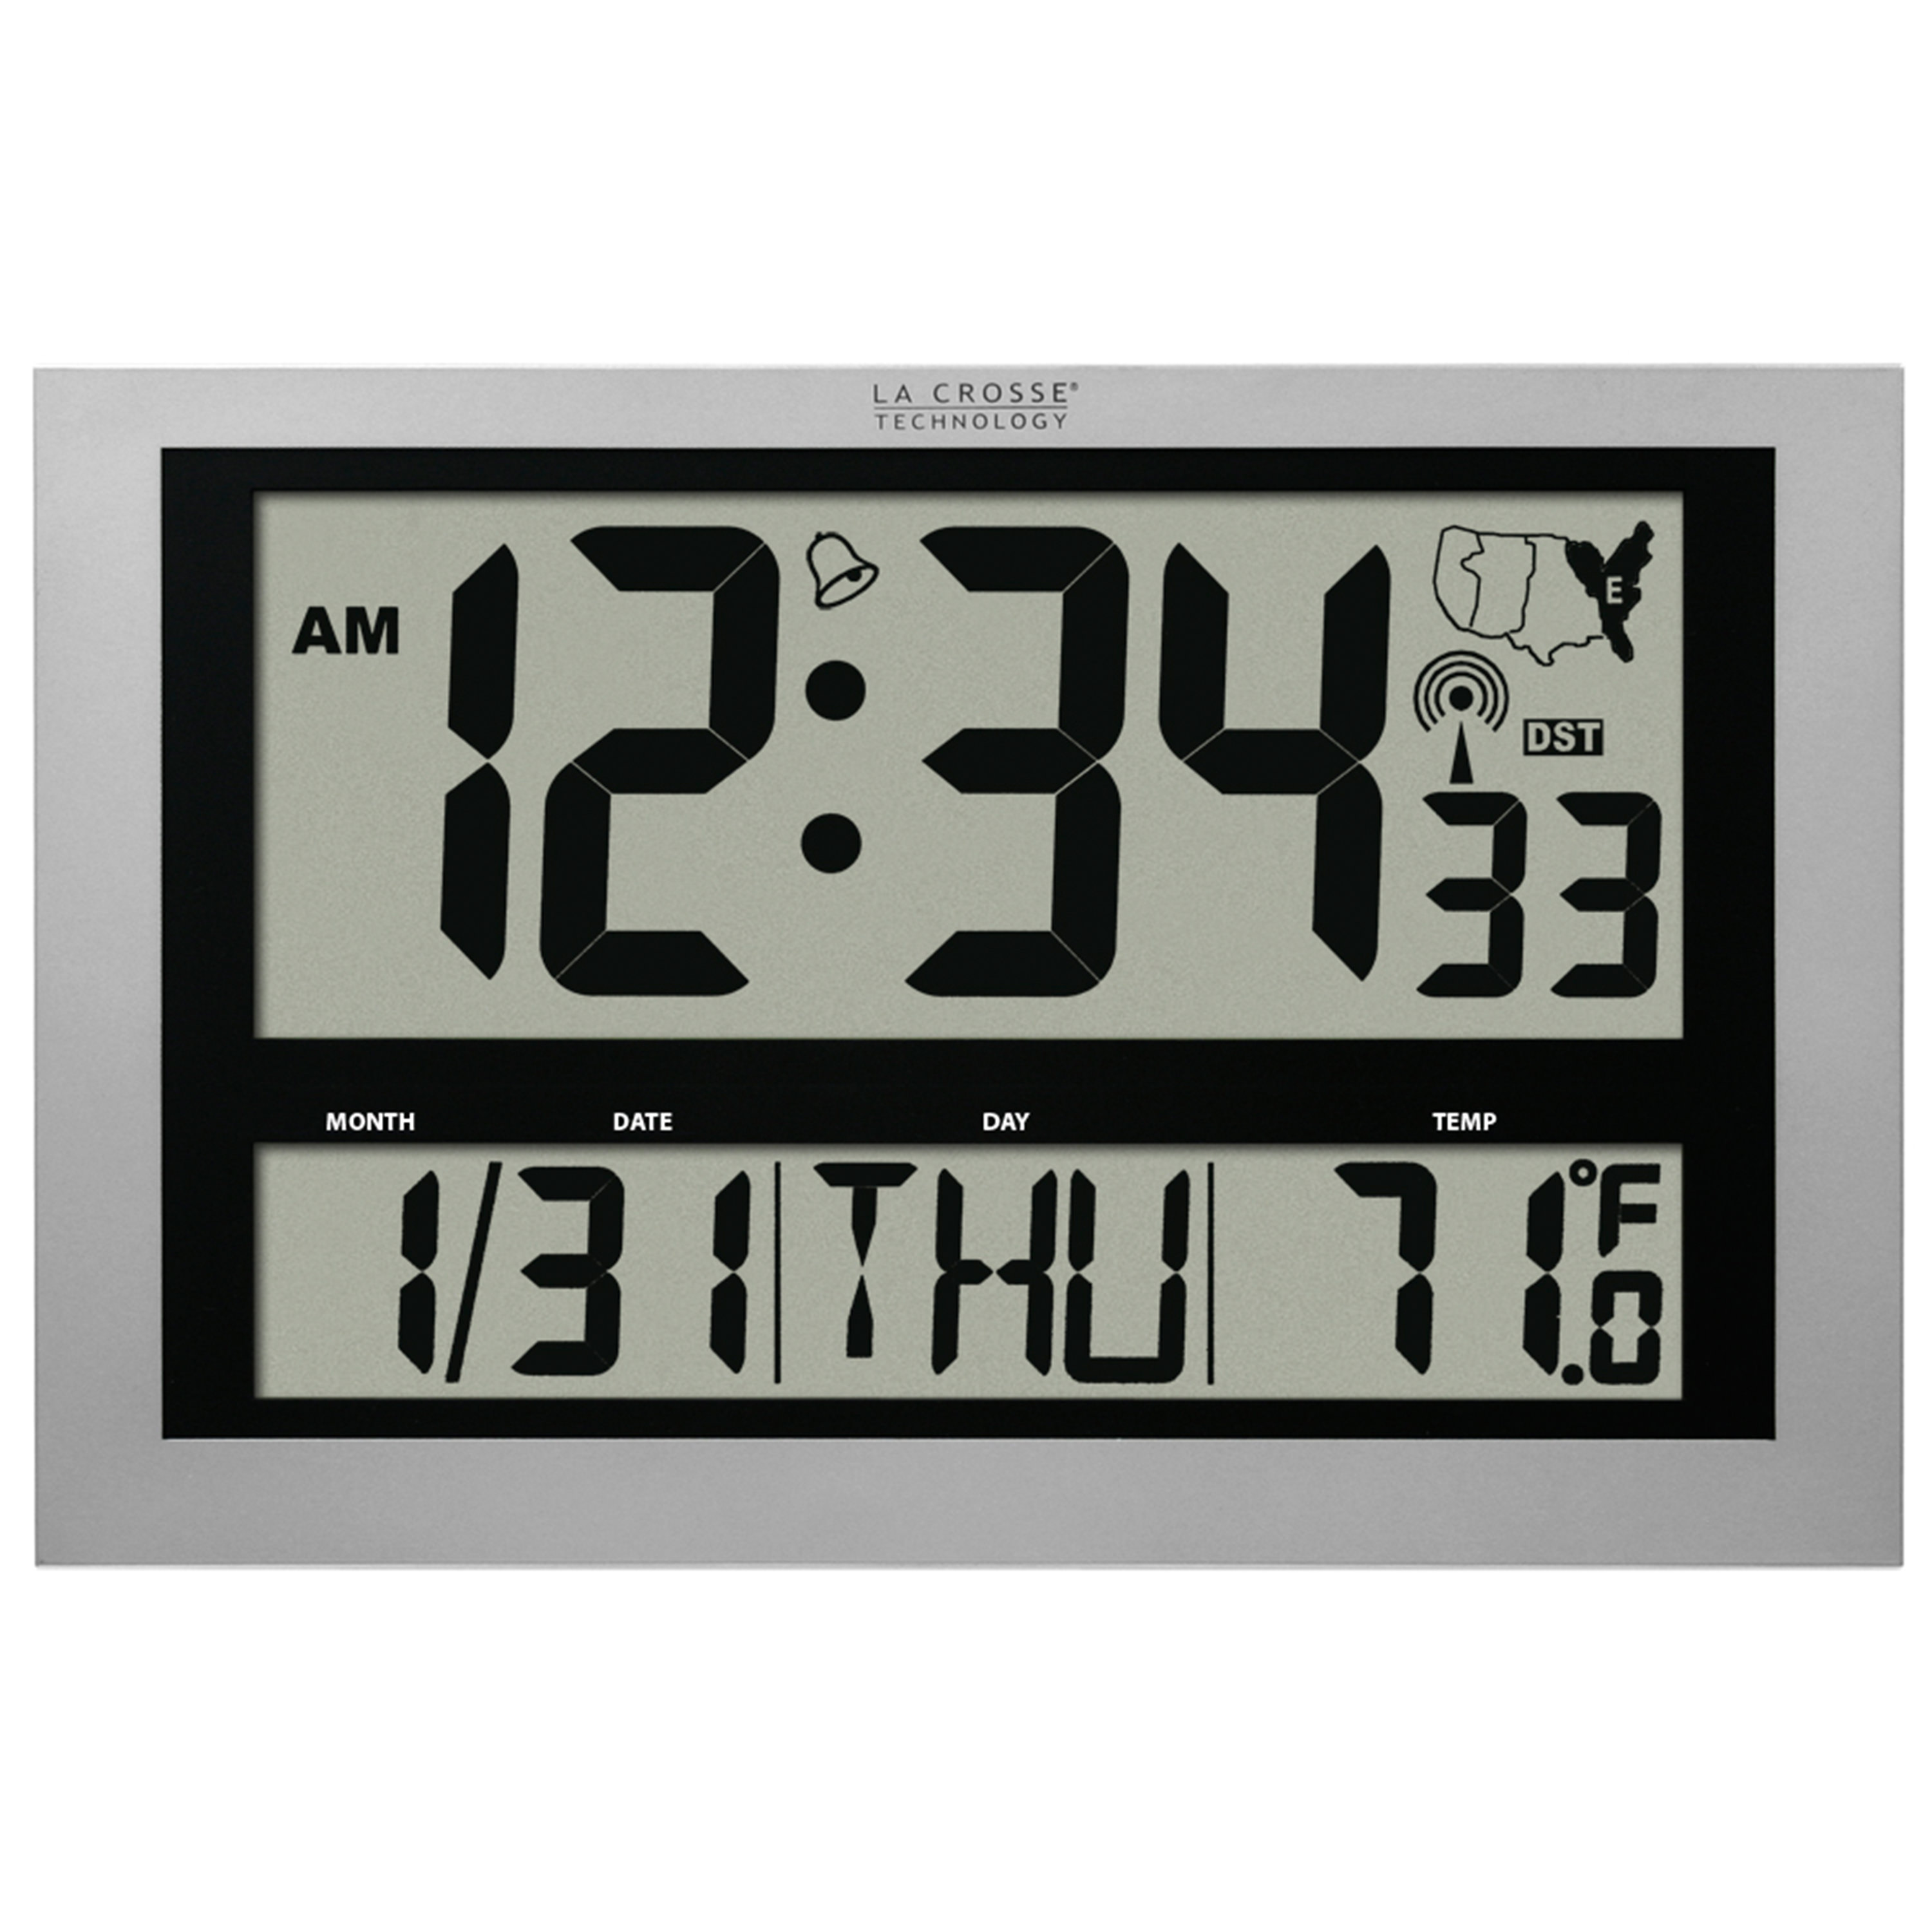 La Crosse Technology 513-1211 Jumbo Atomic Digital Wall Clock with Indoor Temperature